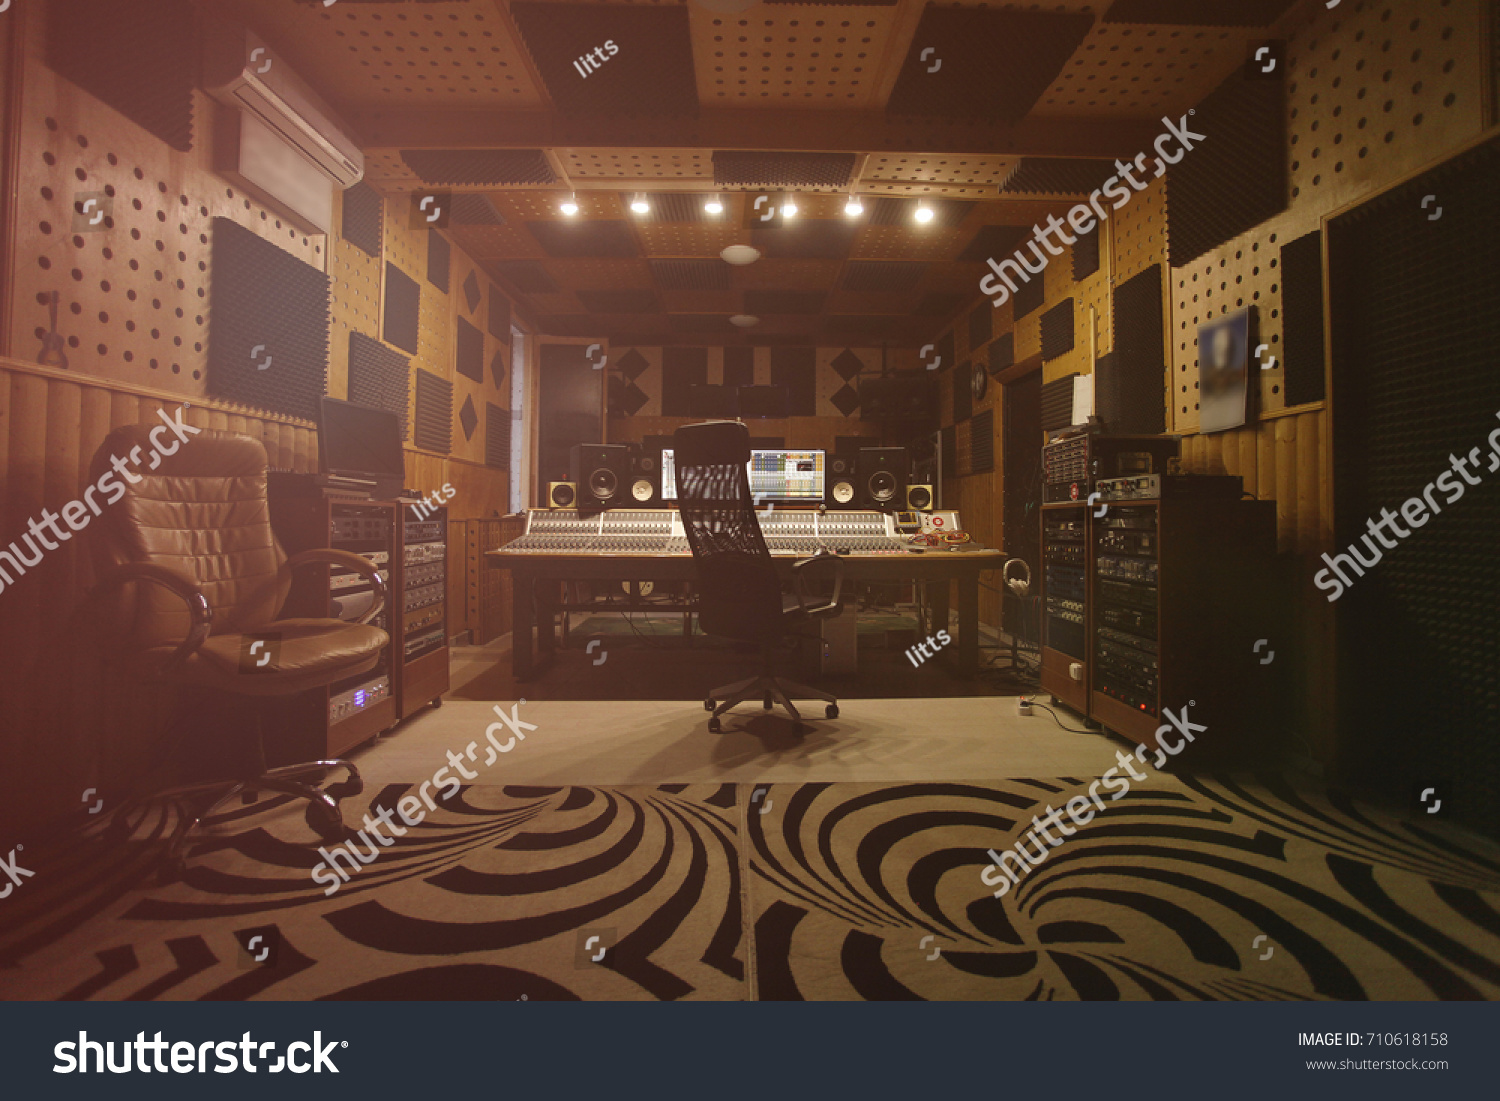 Interior of recording studio